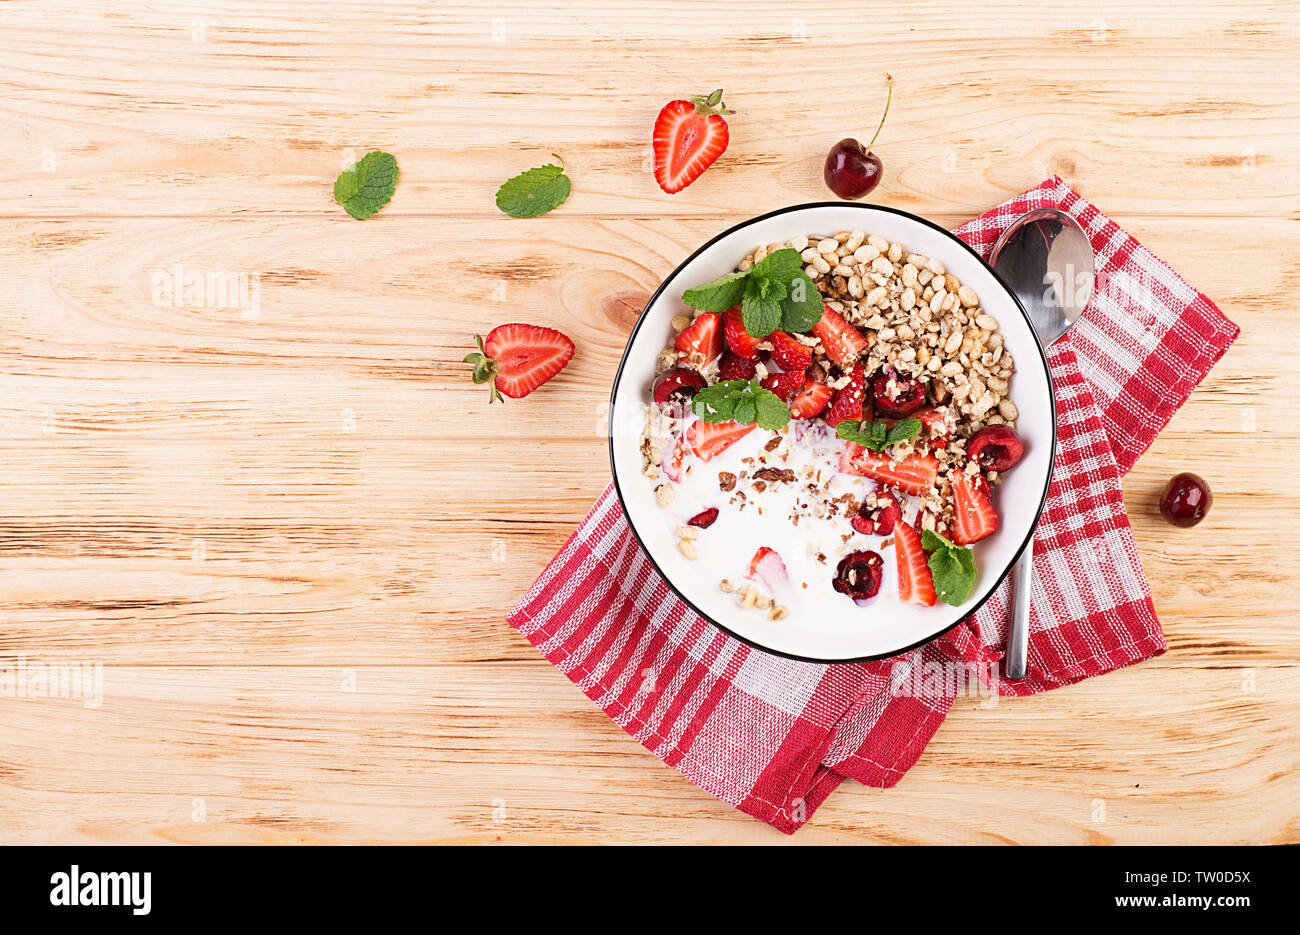 Healthy breakfast - granola, strawberries, cherry, nuts and yogurt in a bowl on a wooden table. Vegetarian concept food. Top view Stock Photo